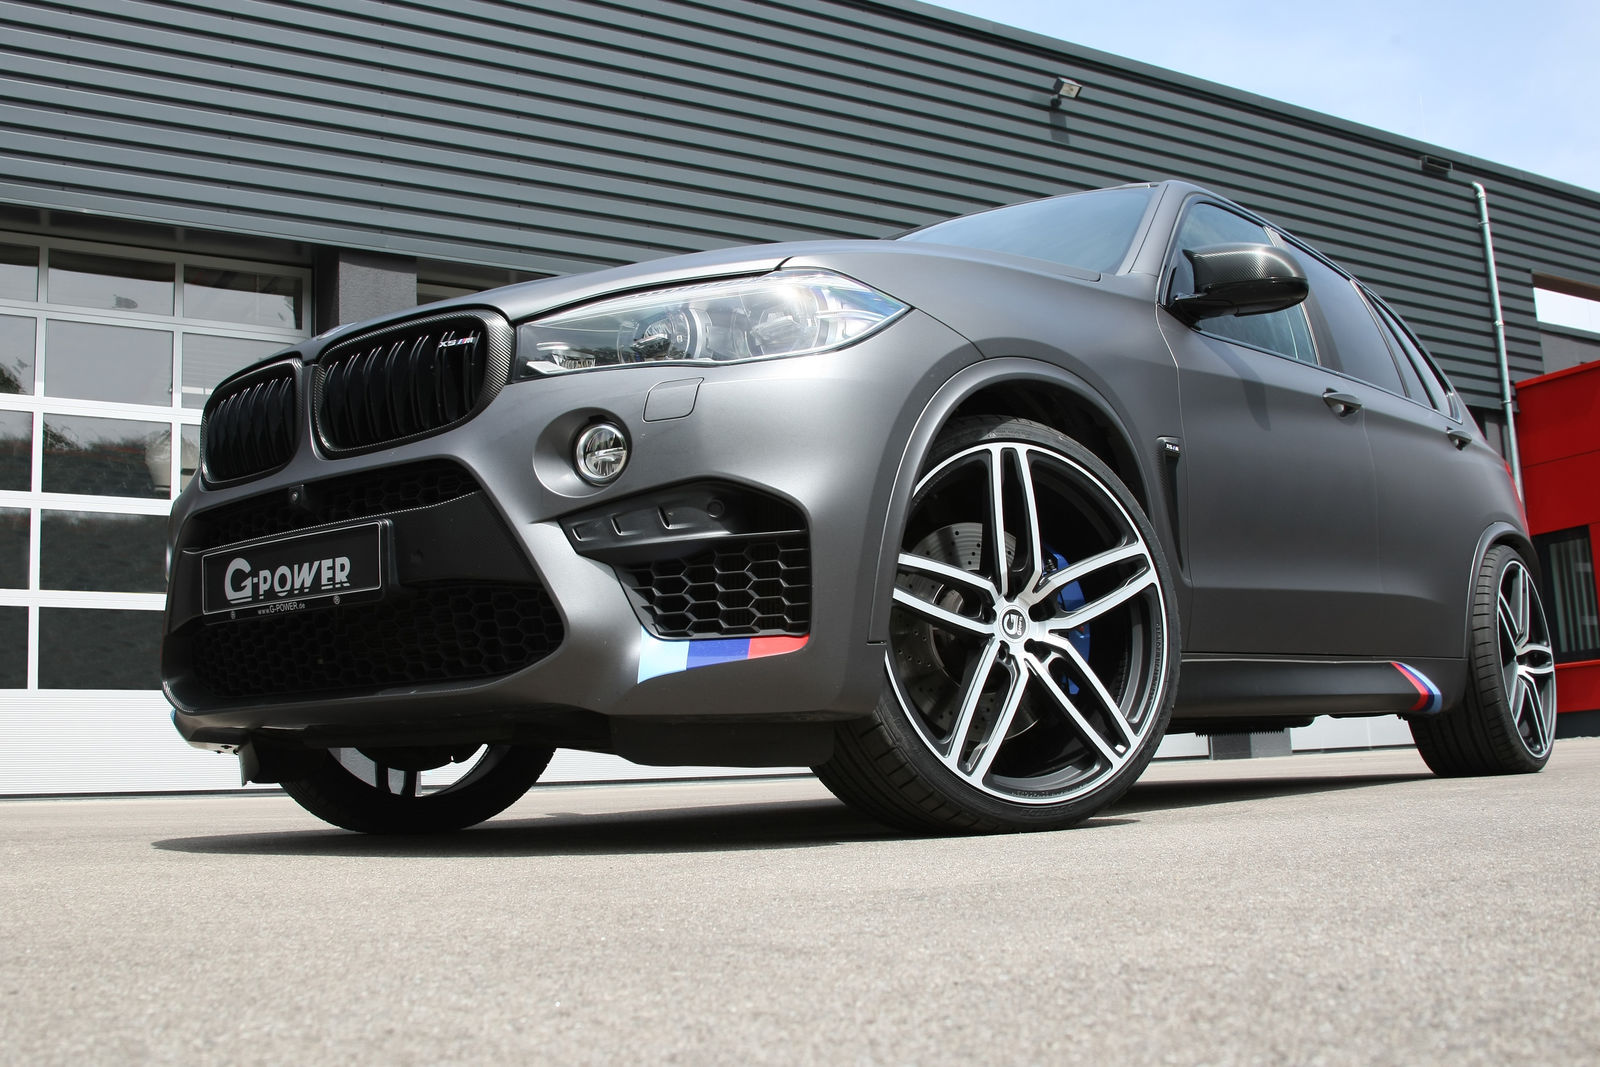 GPower Brings BMW X M To HP And Above Kmh Autoevolution - 300 bmw